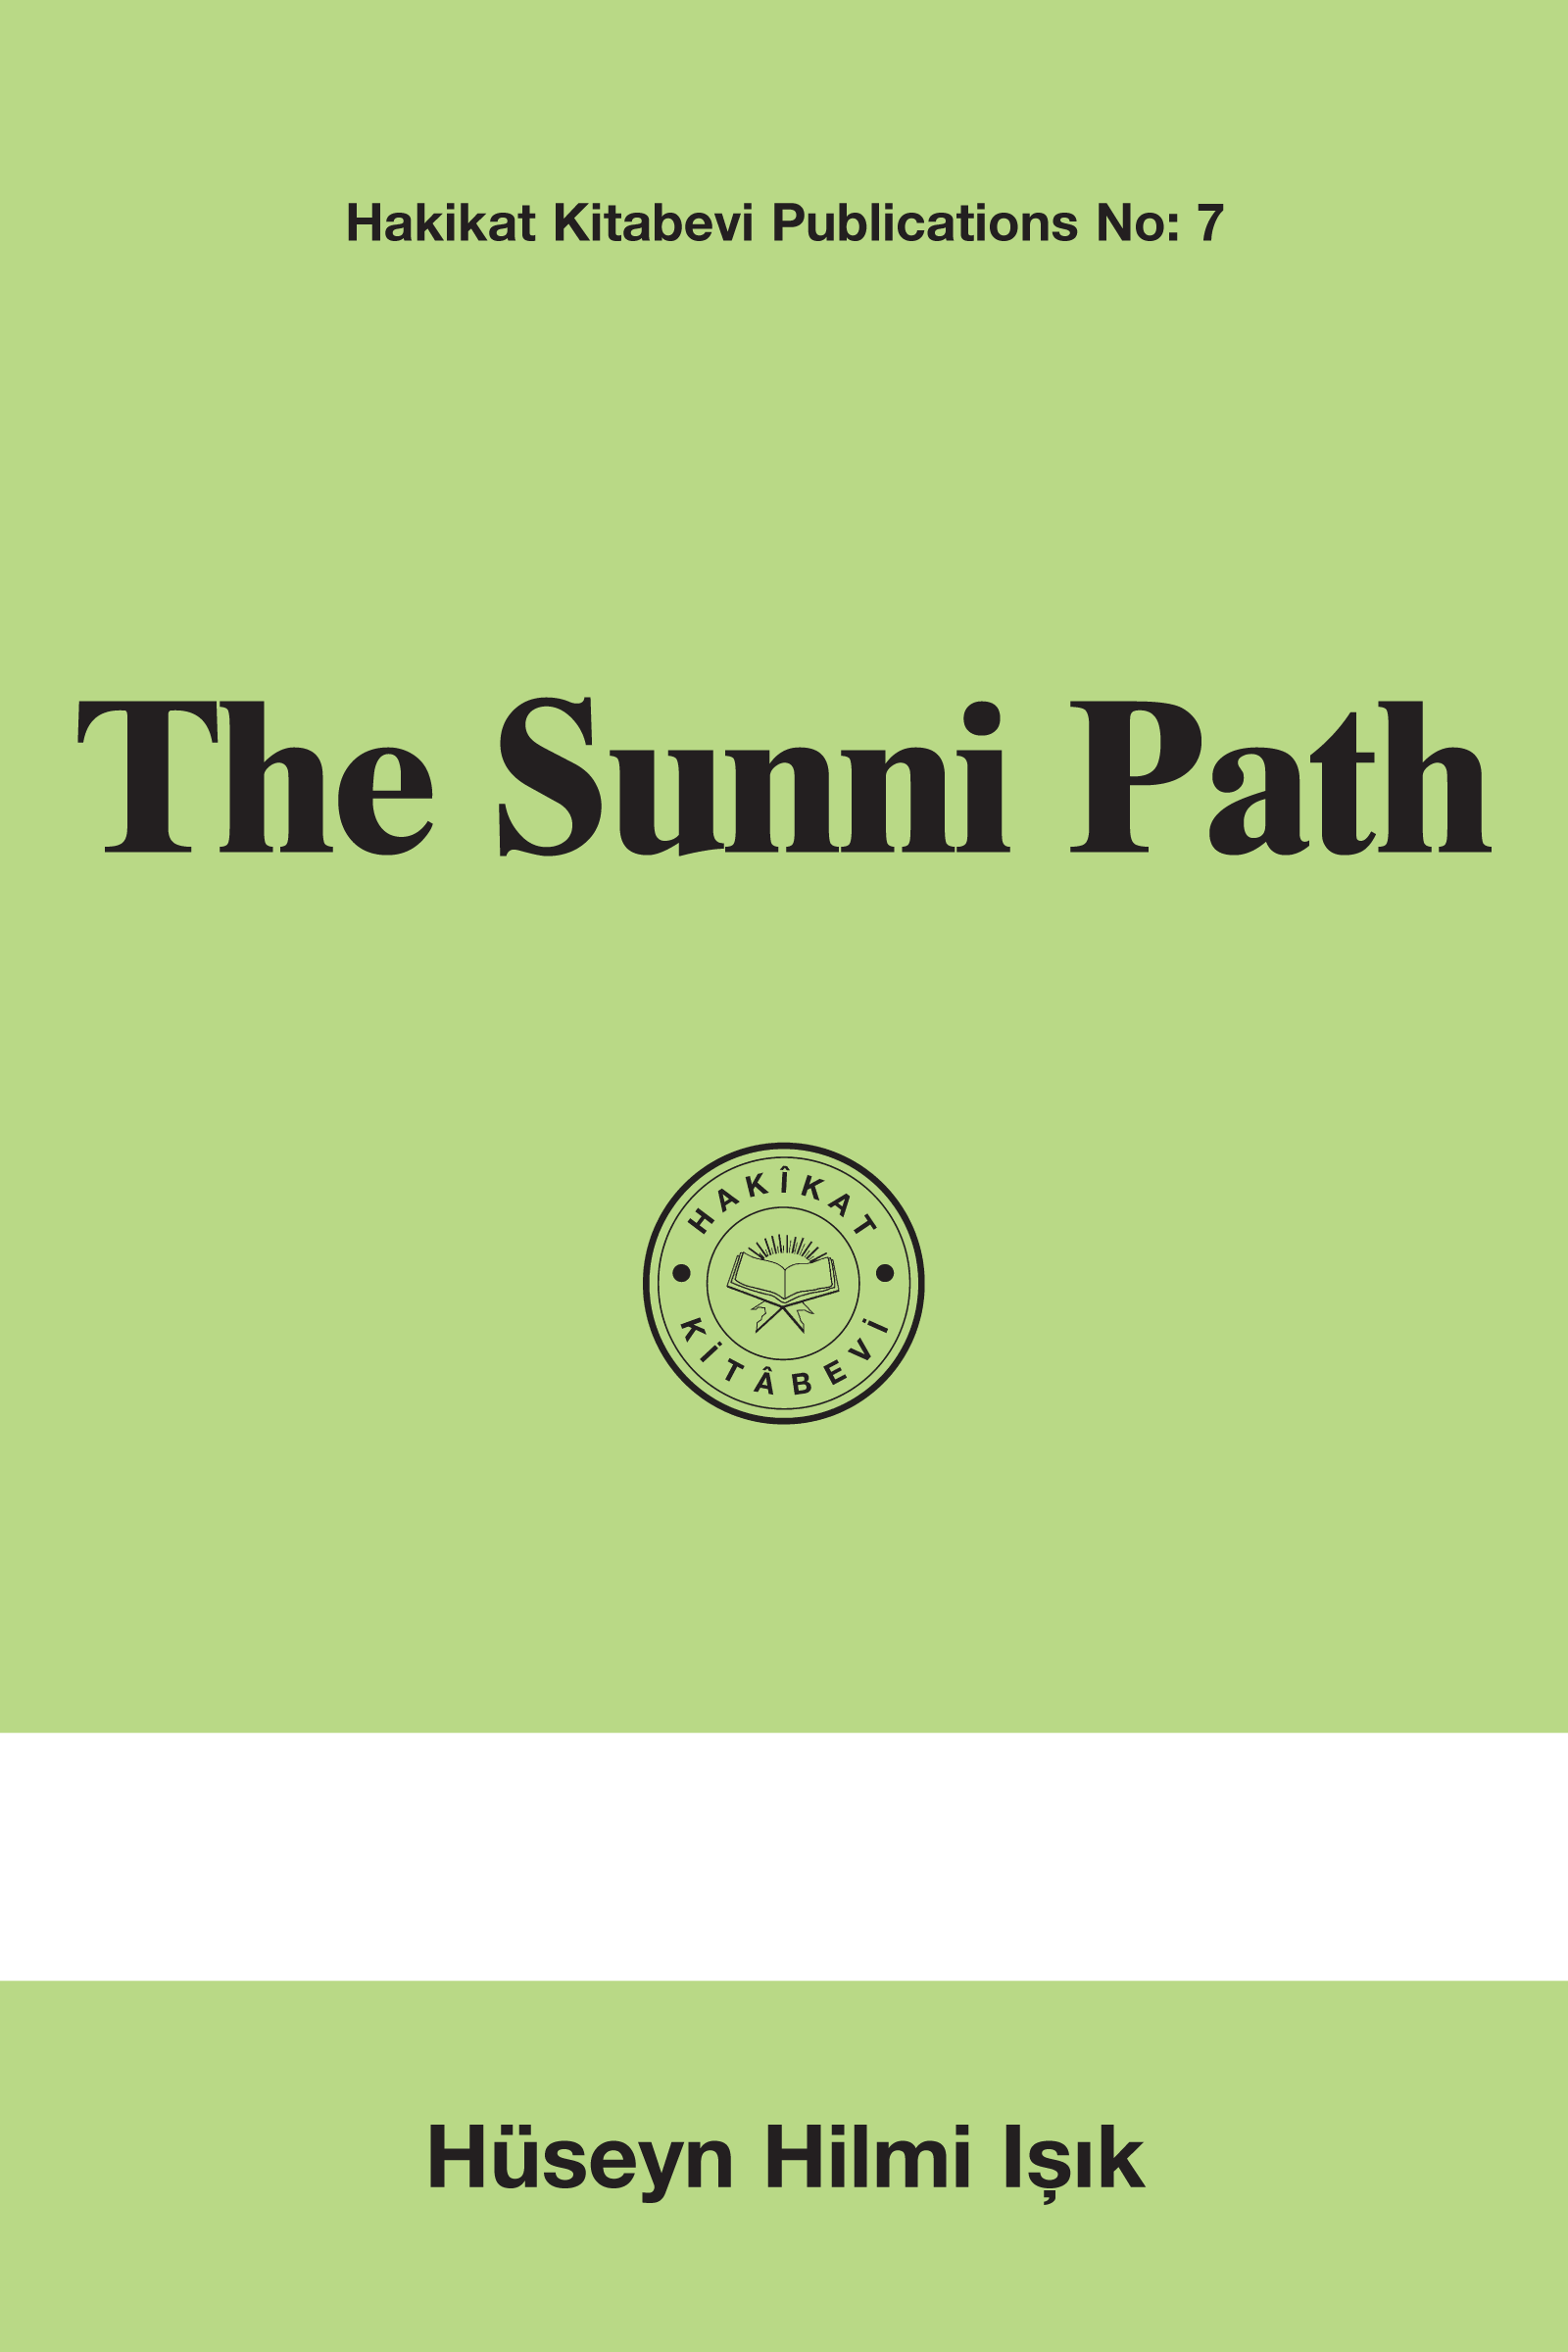 The Sunni Path